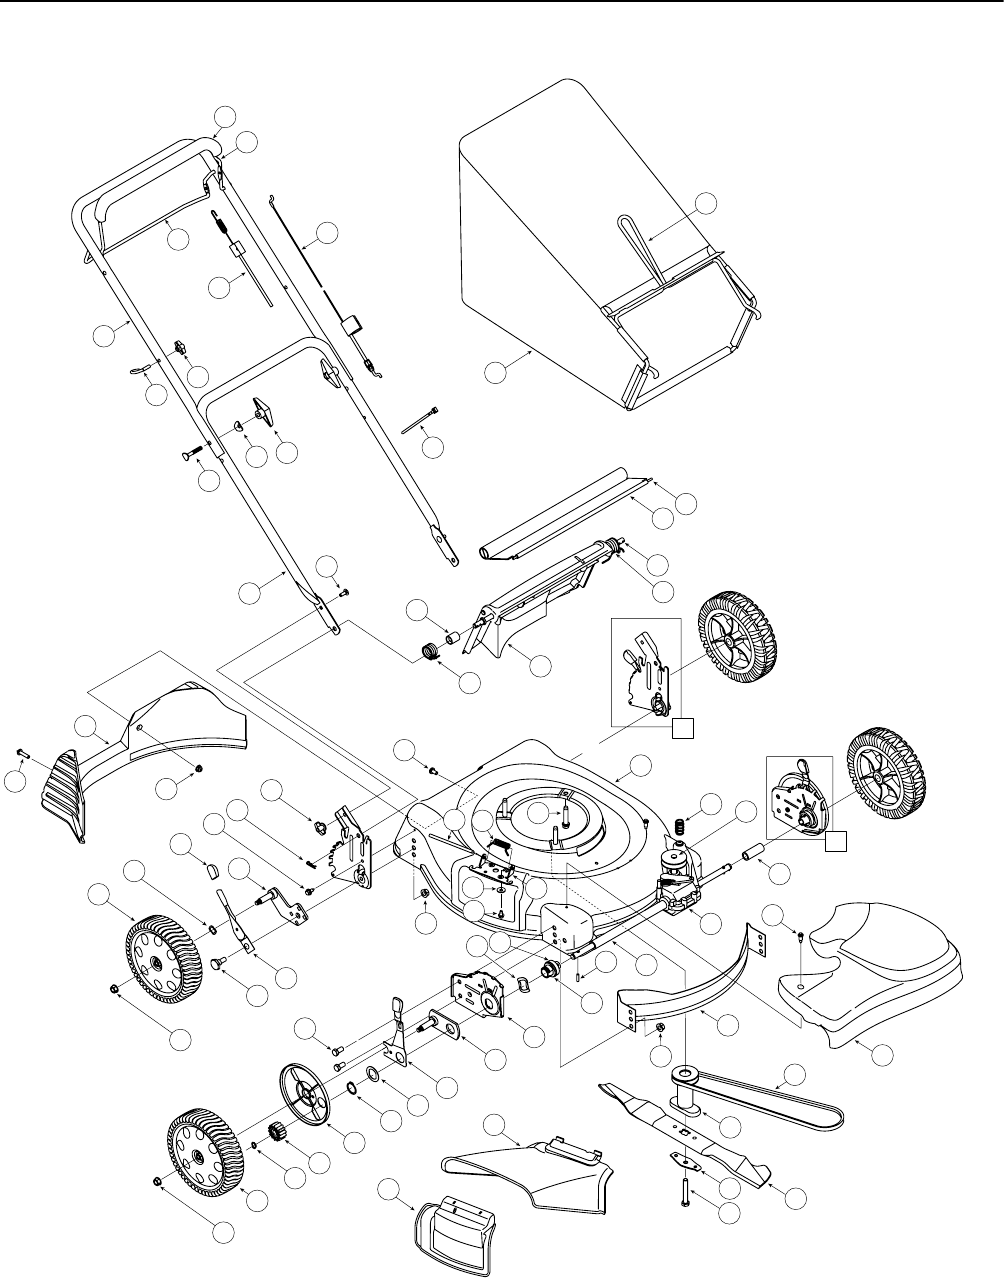 Page 16 of Troy-Bilt Lawn Mower 469 User Guide